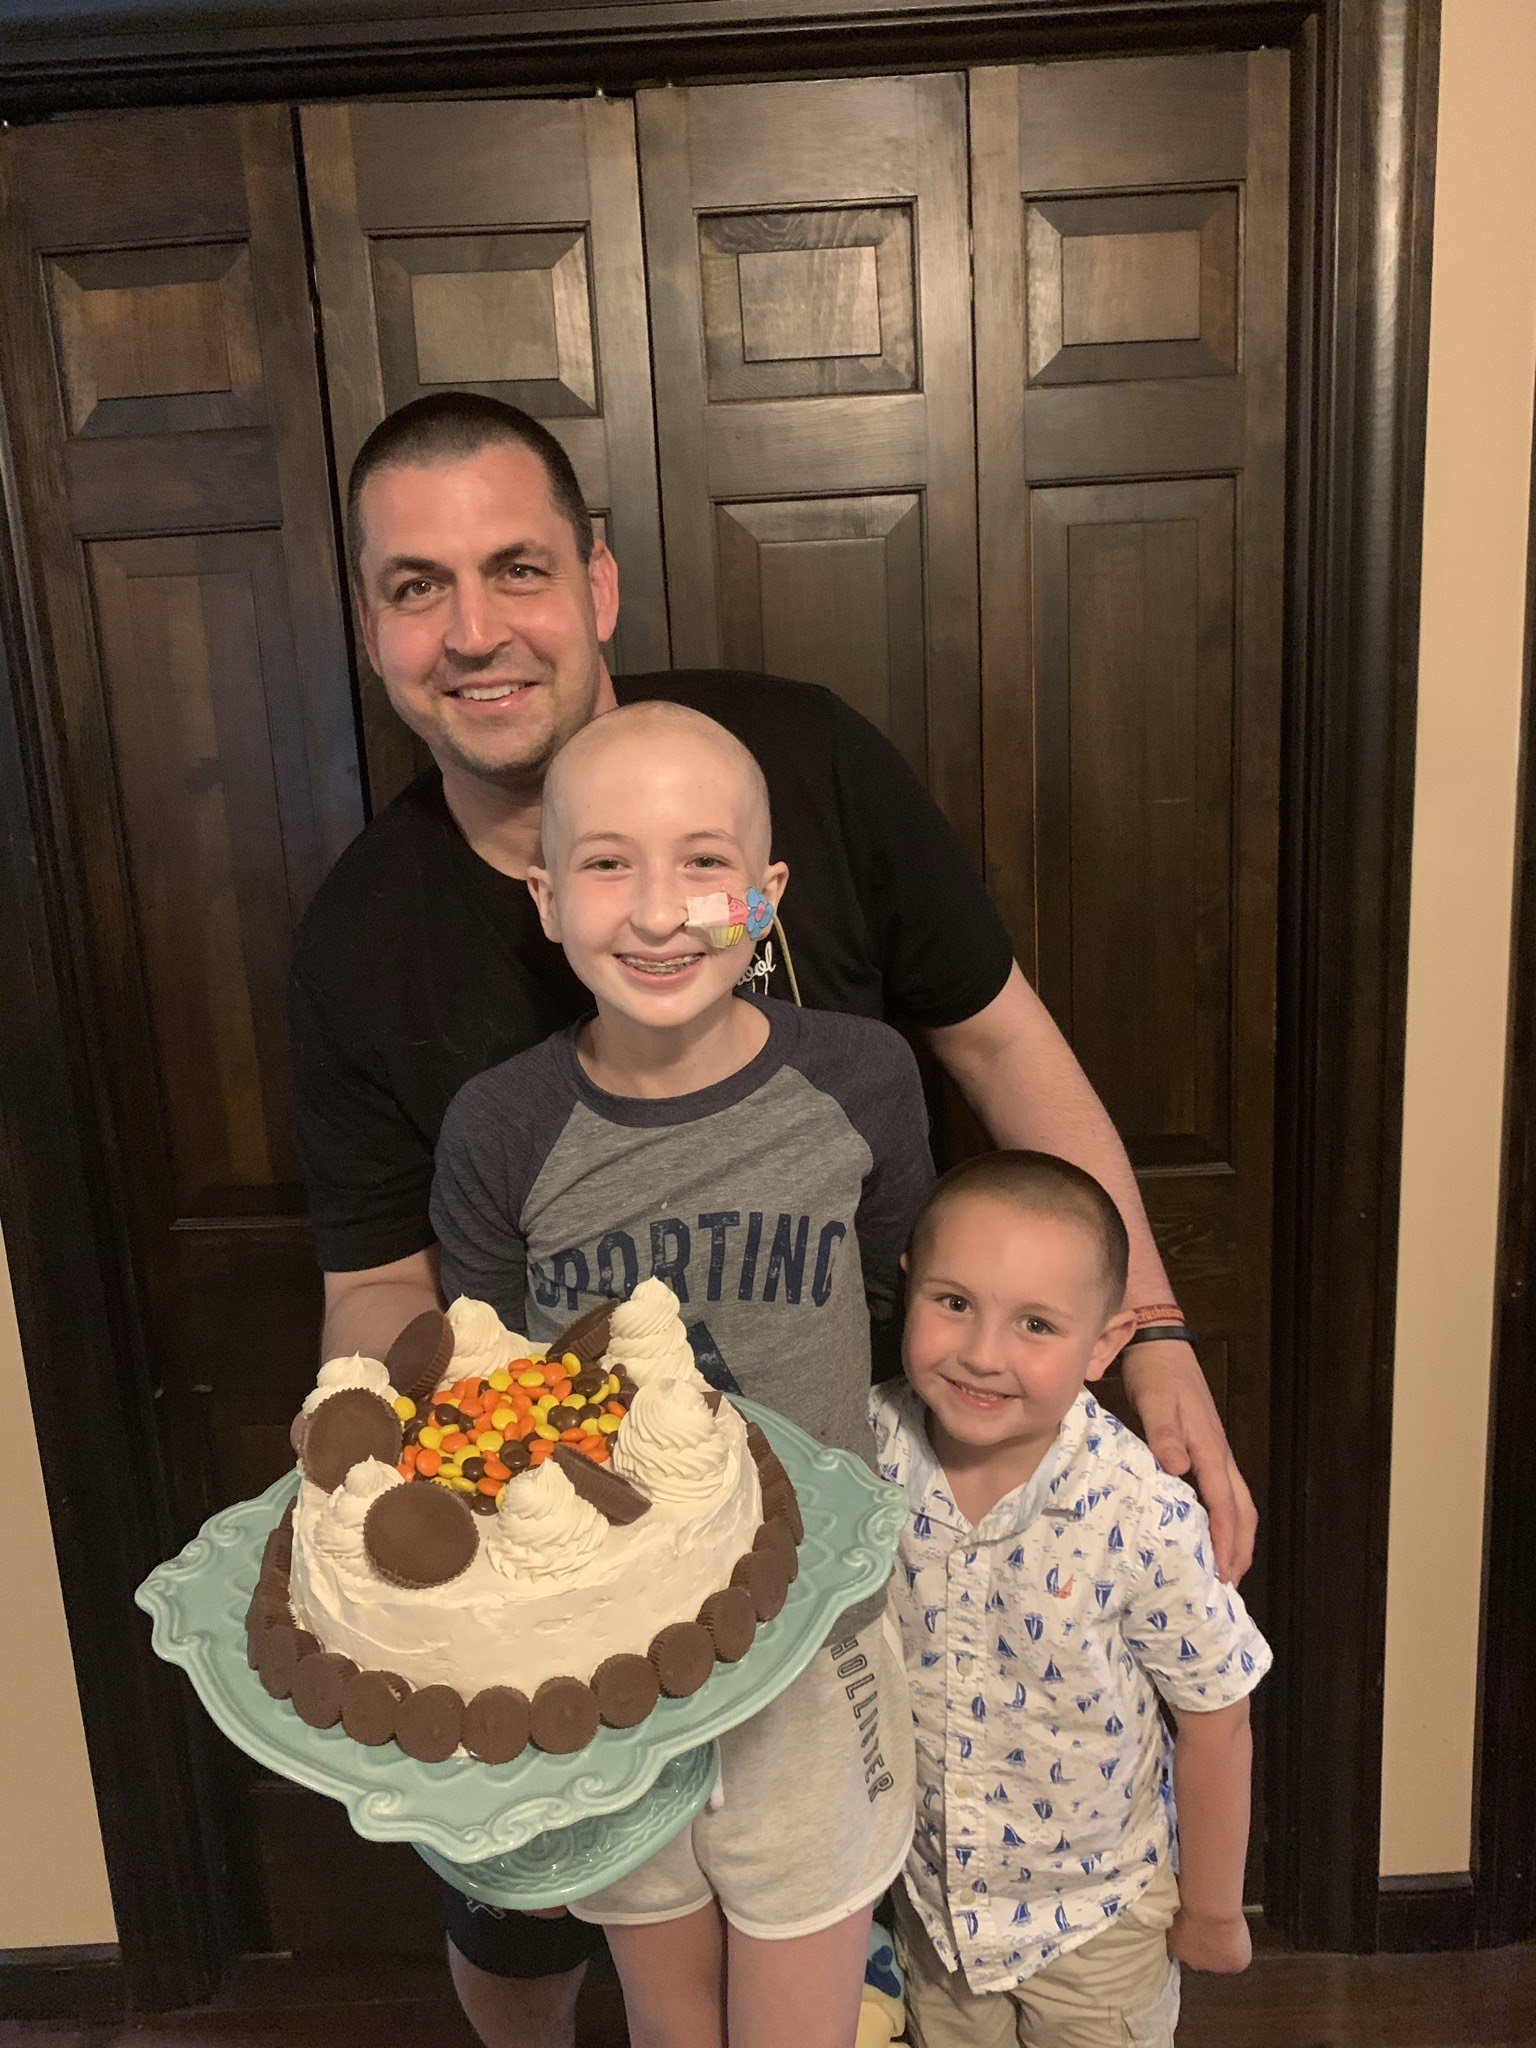 Young Girl with Stage Four Neuroblastoma Cancer Asks for Votes to Help Her Win a Baking Contest